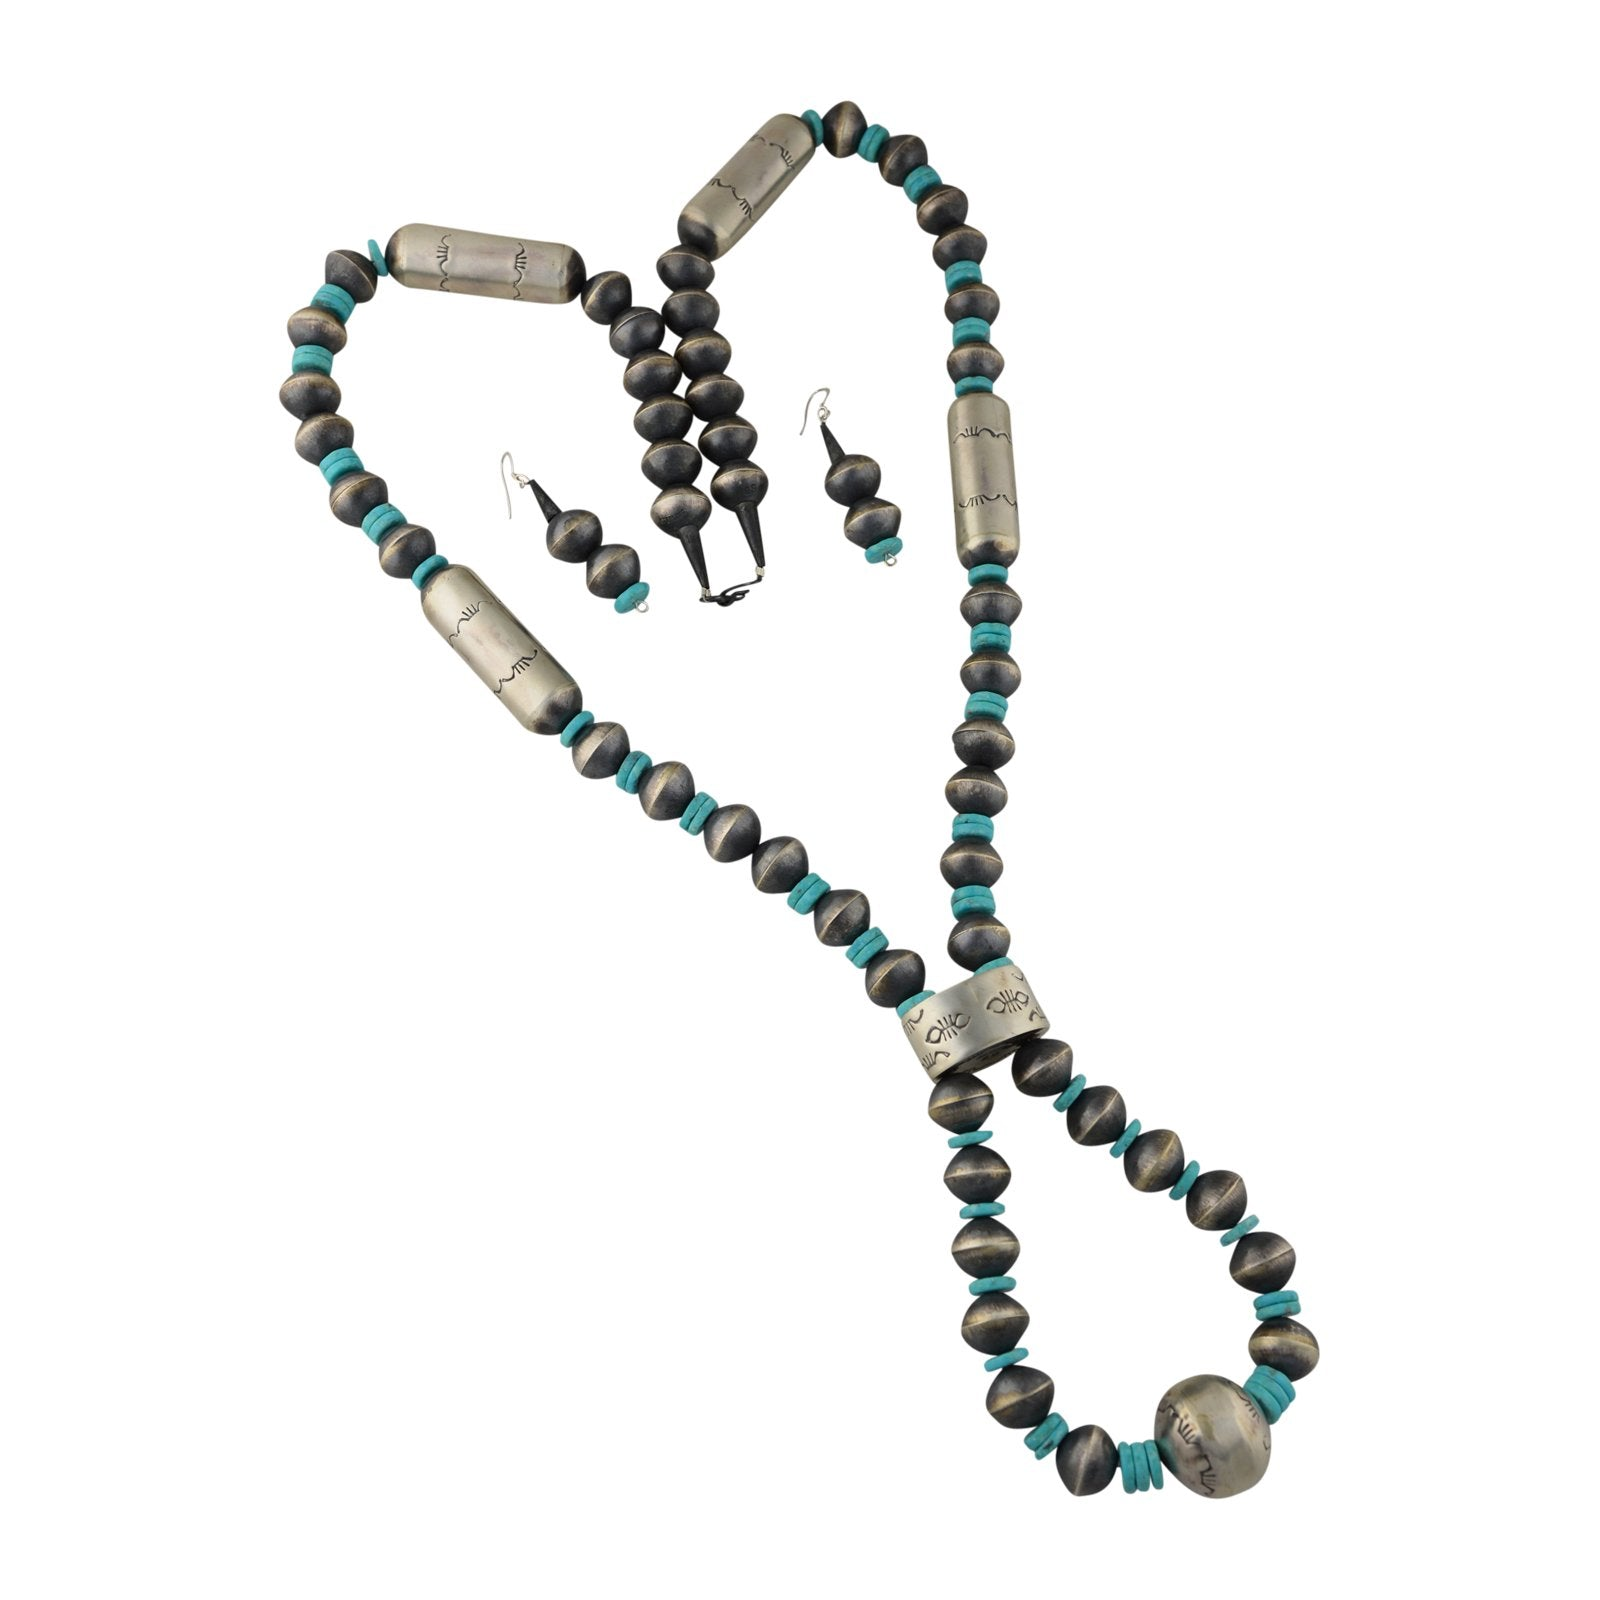 Sophia Becenti Sterling Silver Turquoise Navajo Pearl Jacla Necklace & Earrings - Turquoise925